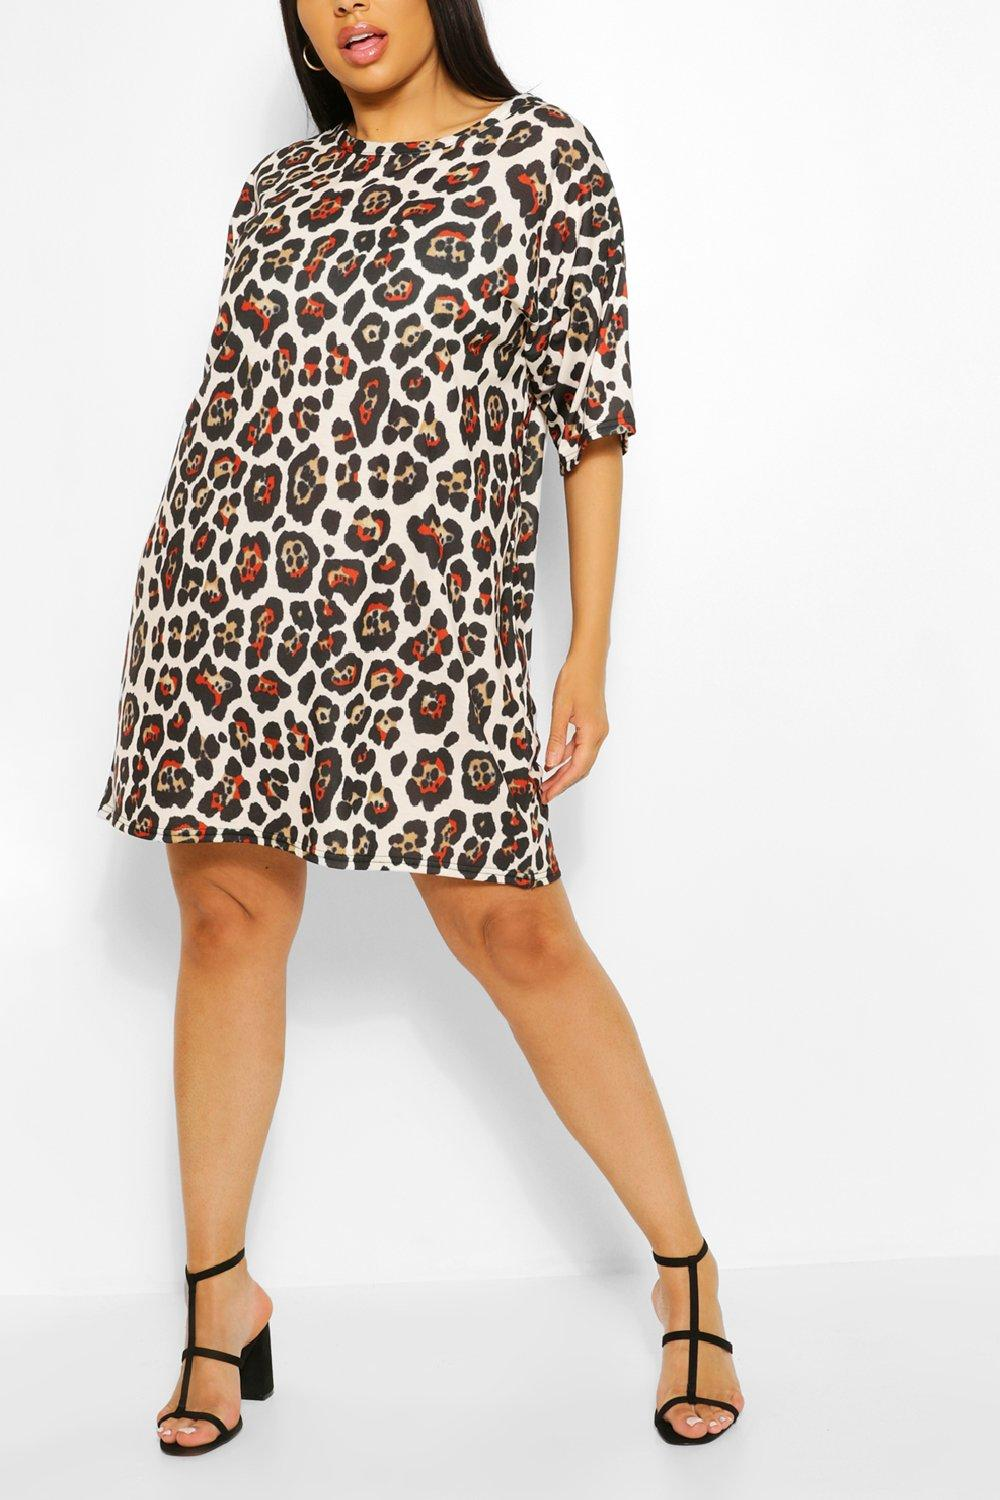 Plus Leopard Print Oversized T-shirt Dress 7